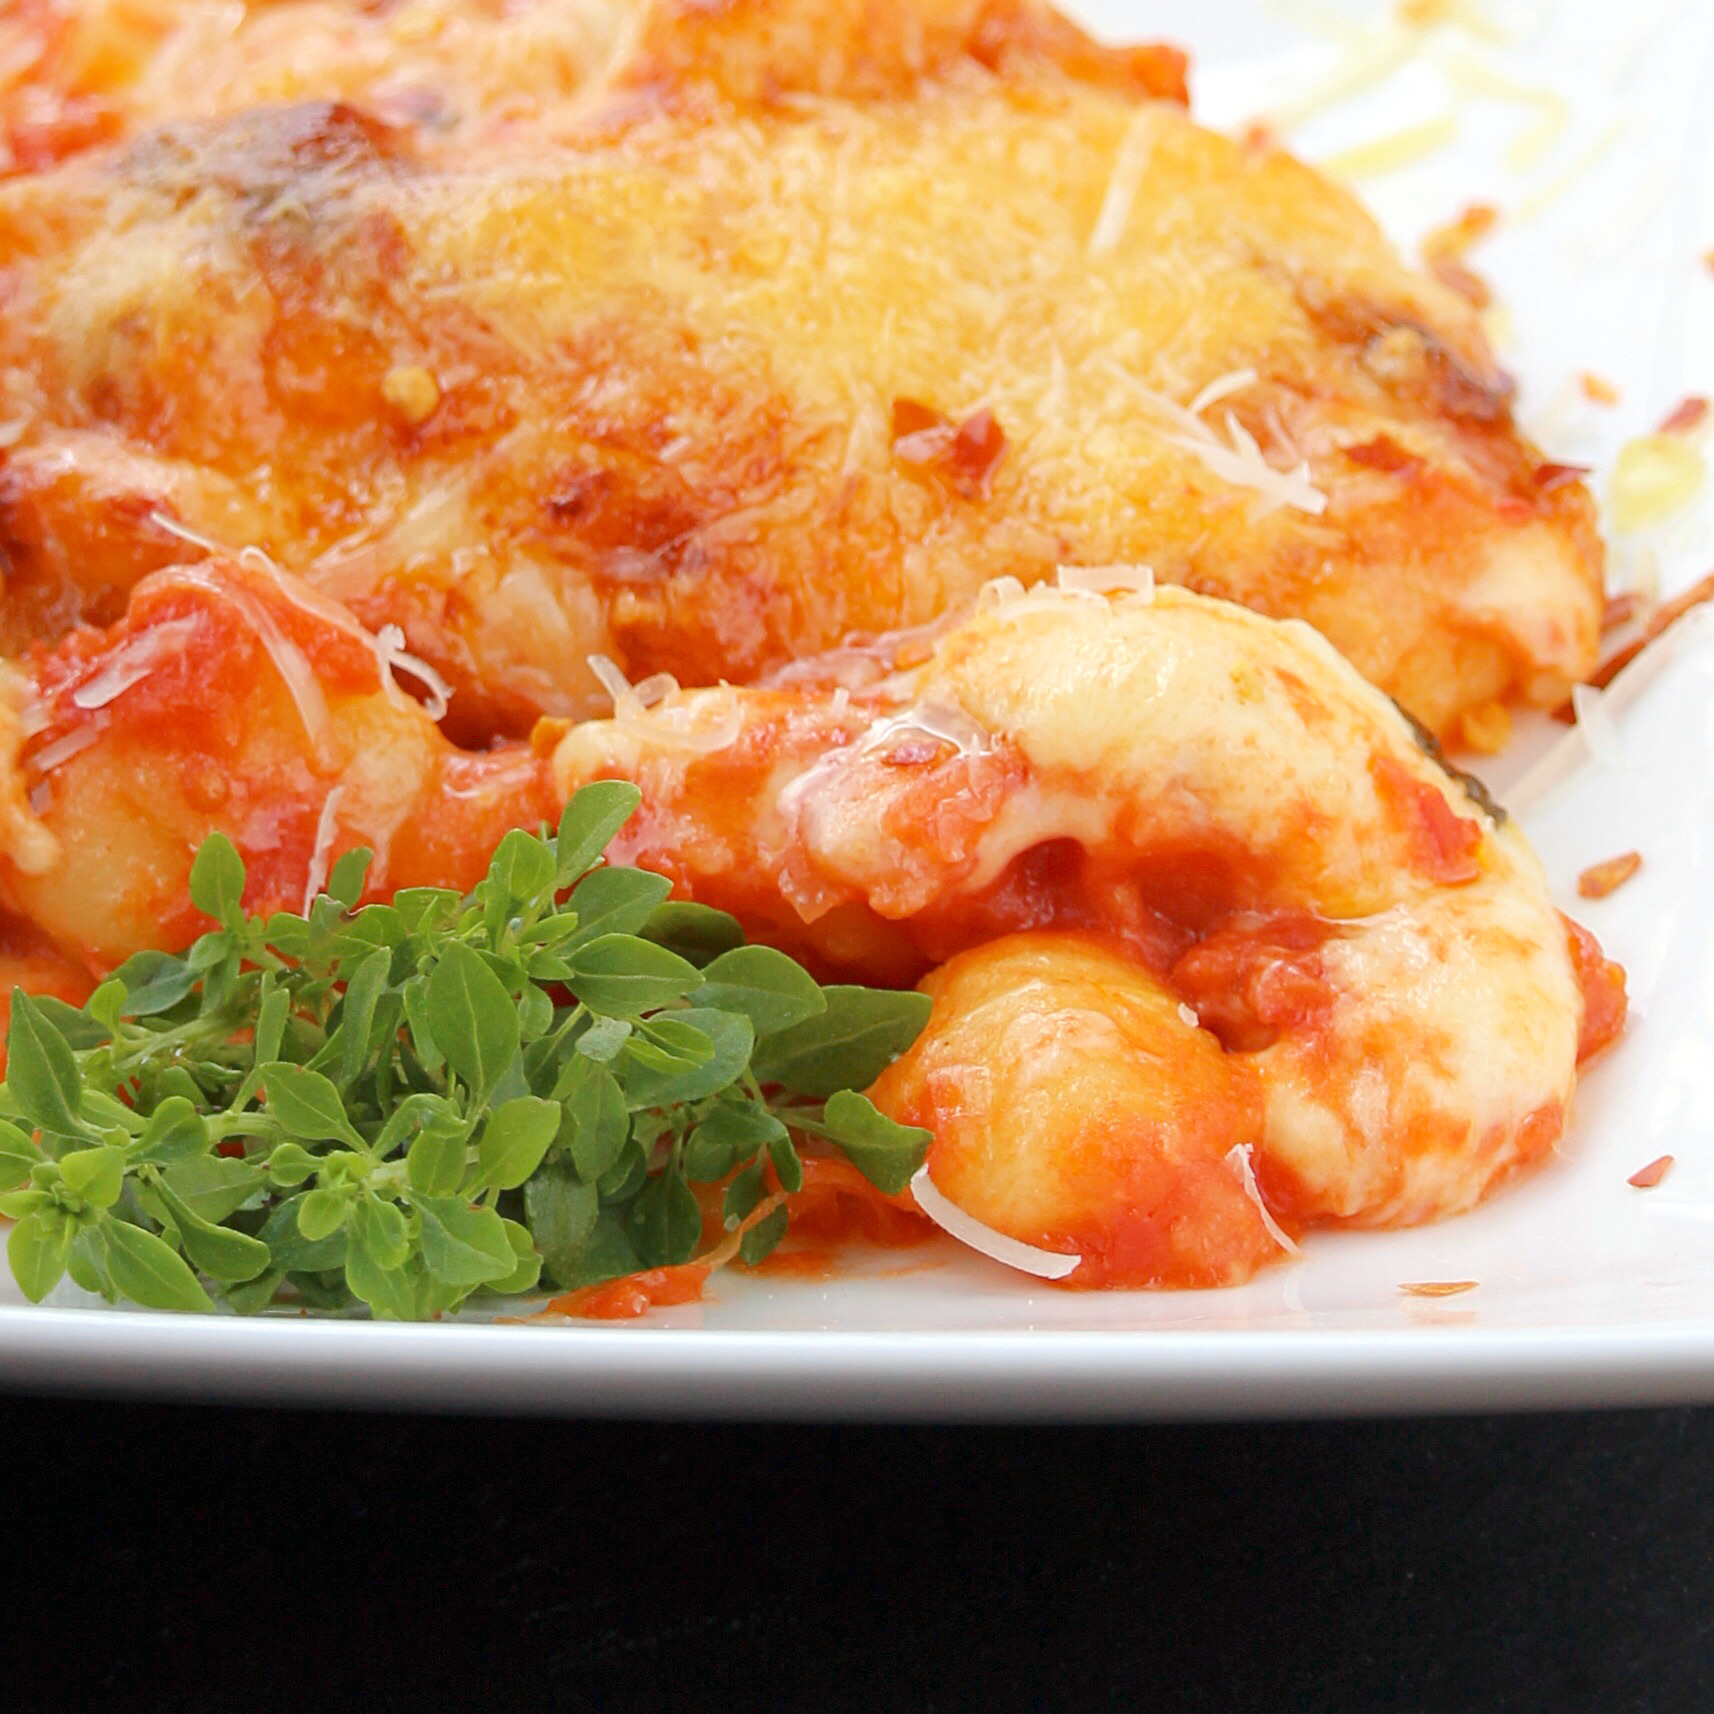 potato gnocchi with tomato sauce and cheese on a white plate